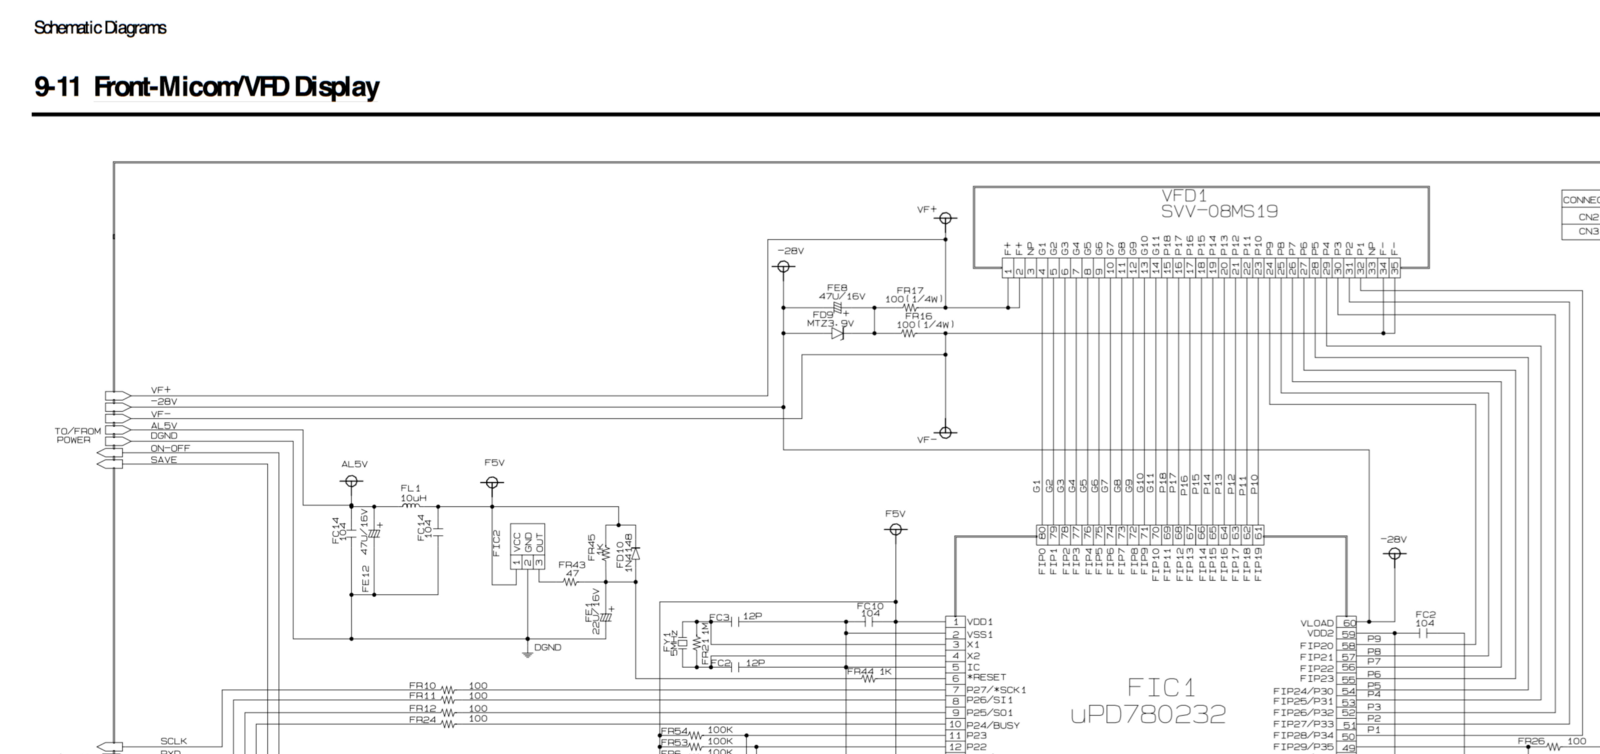 Salvaging A Samsung Dvd M101 Player R X Seger Medium P25 Wiring Diagram Other Possible Useful References Guide To Fundamental Vfd Operation Pcbheaven Reverse Engineering An Lcd Display But Then Found Page 69 Of Service